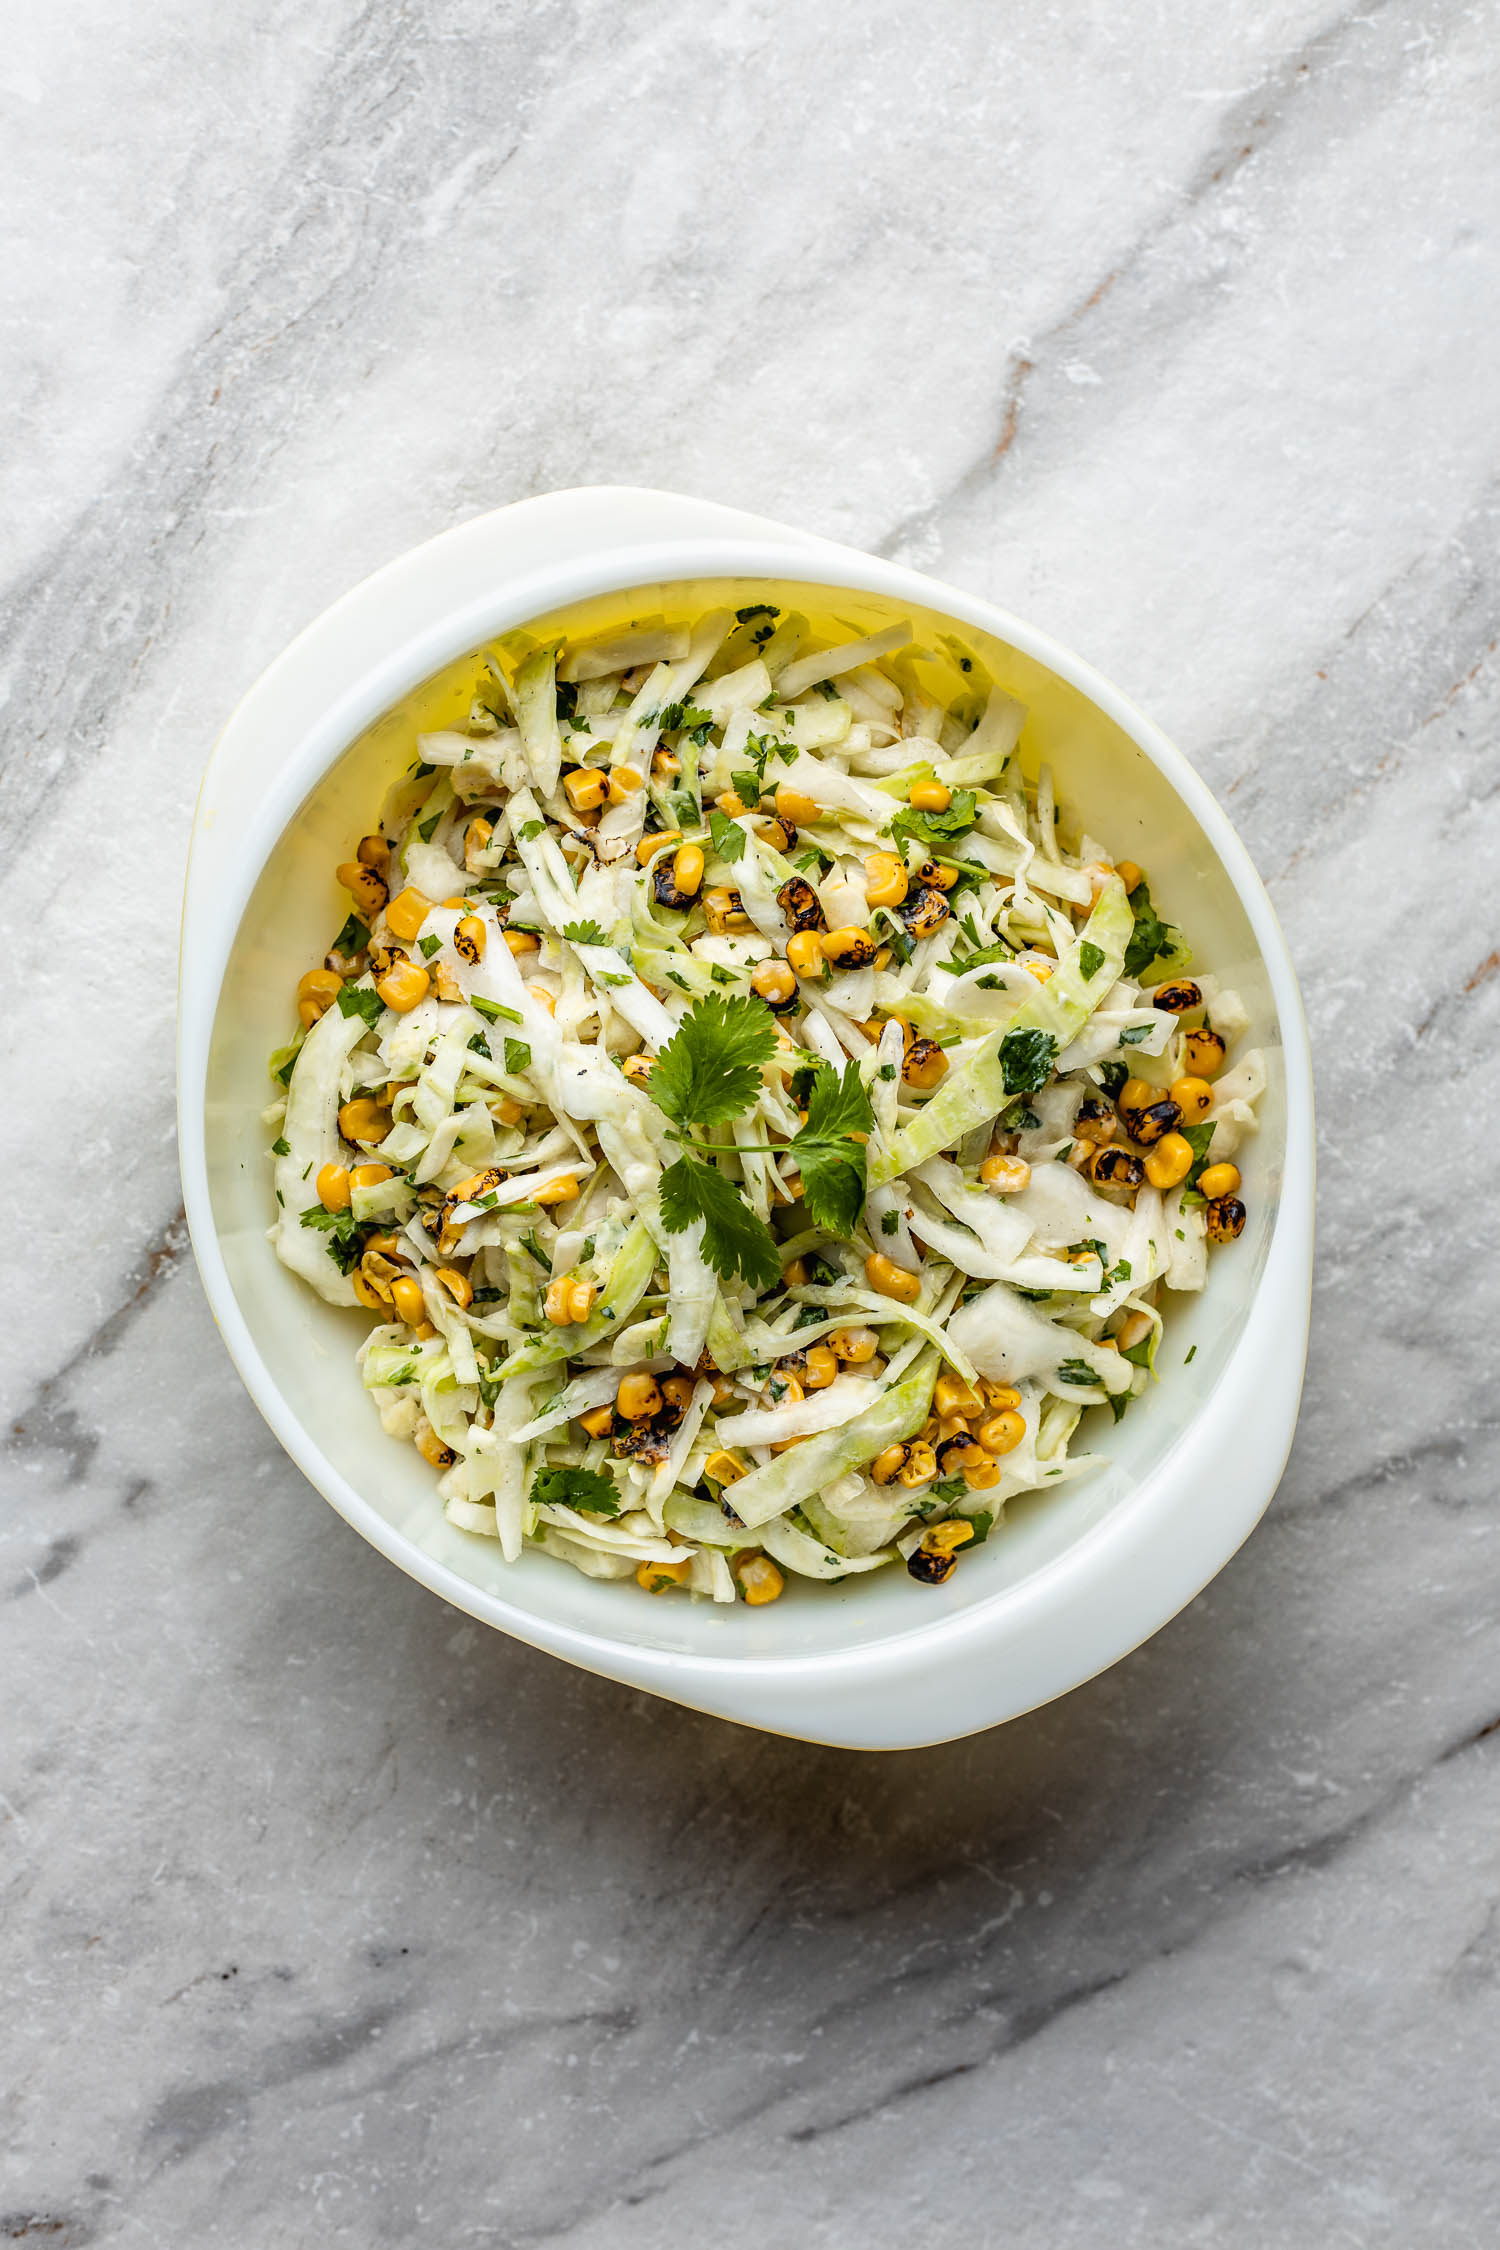 a mid century modern bowl with handles holding coleslaw topped with corn, cilantro, and lime, sits on marble surface